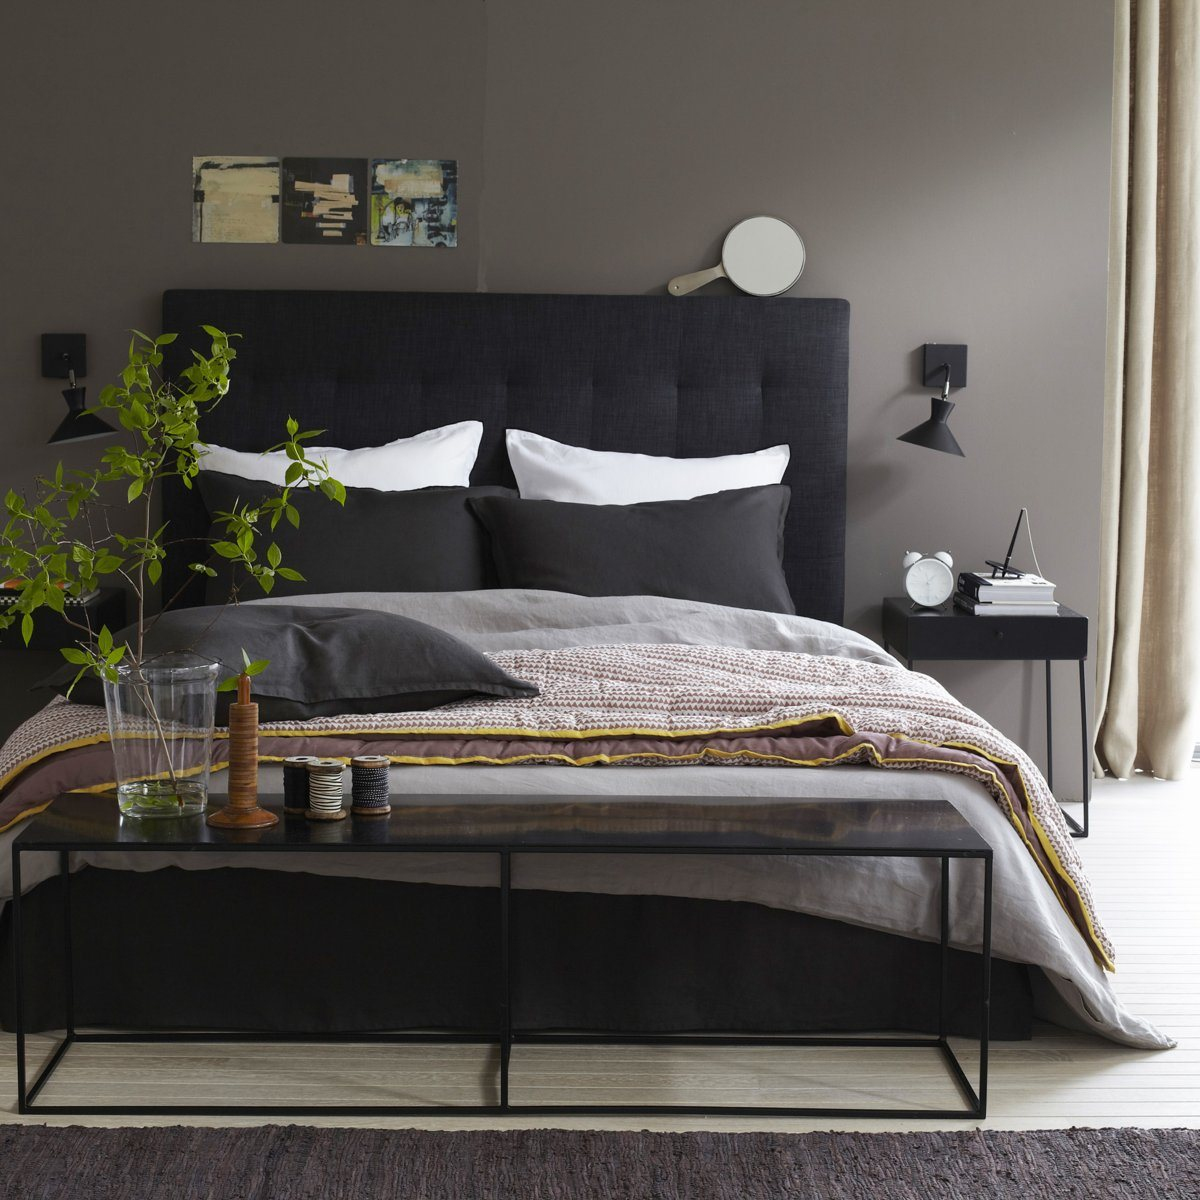 Canape Romy Conforama Luxe Stock Awesome Idee Deco Chambre Gris S Sledbralorne